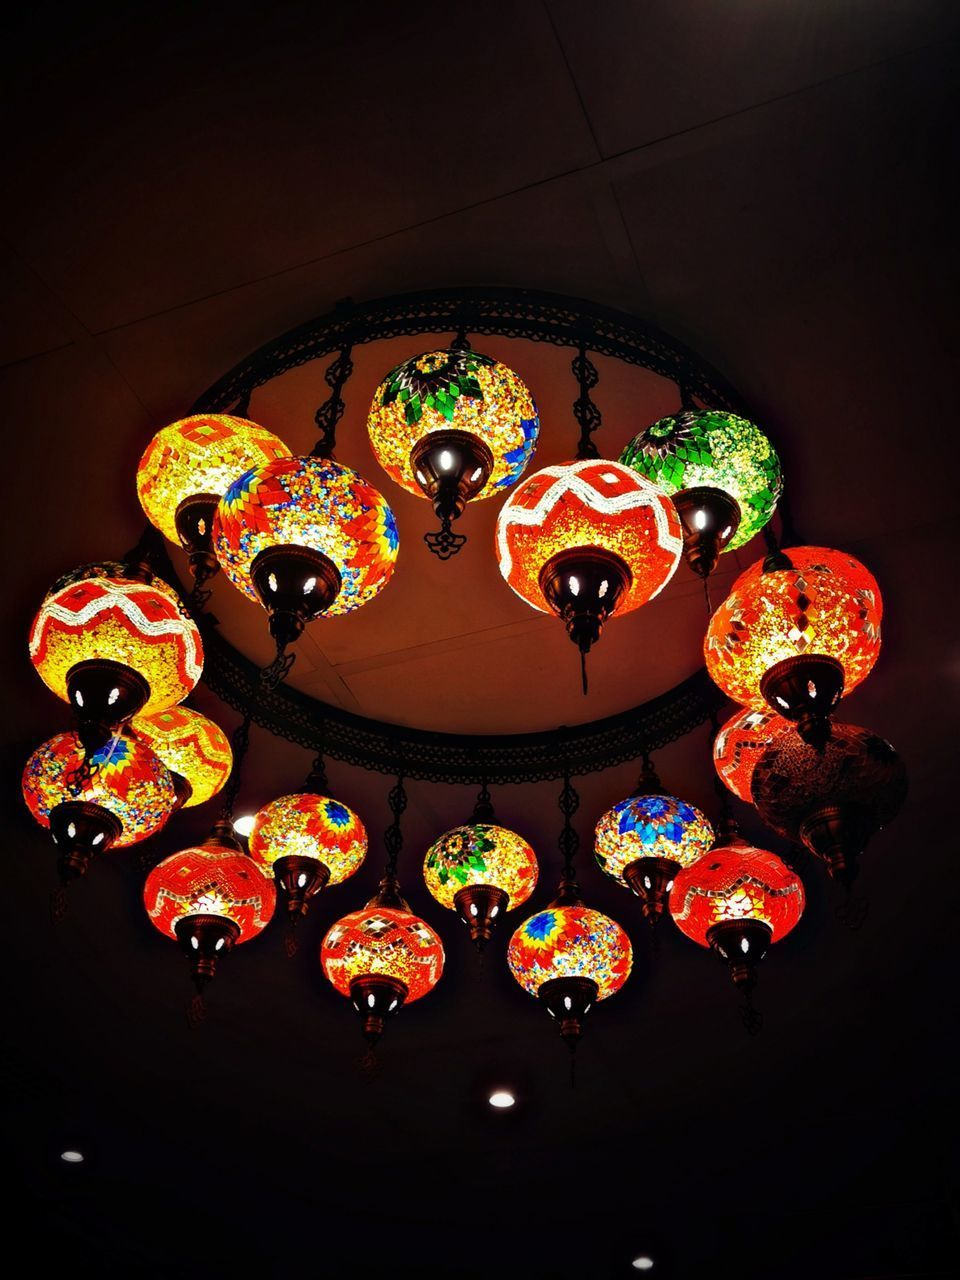 LOW ANGLE VIEW OF ILLUMINATED LANTERNS